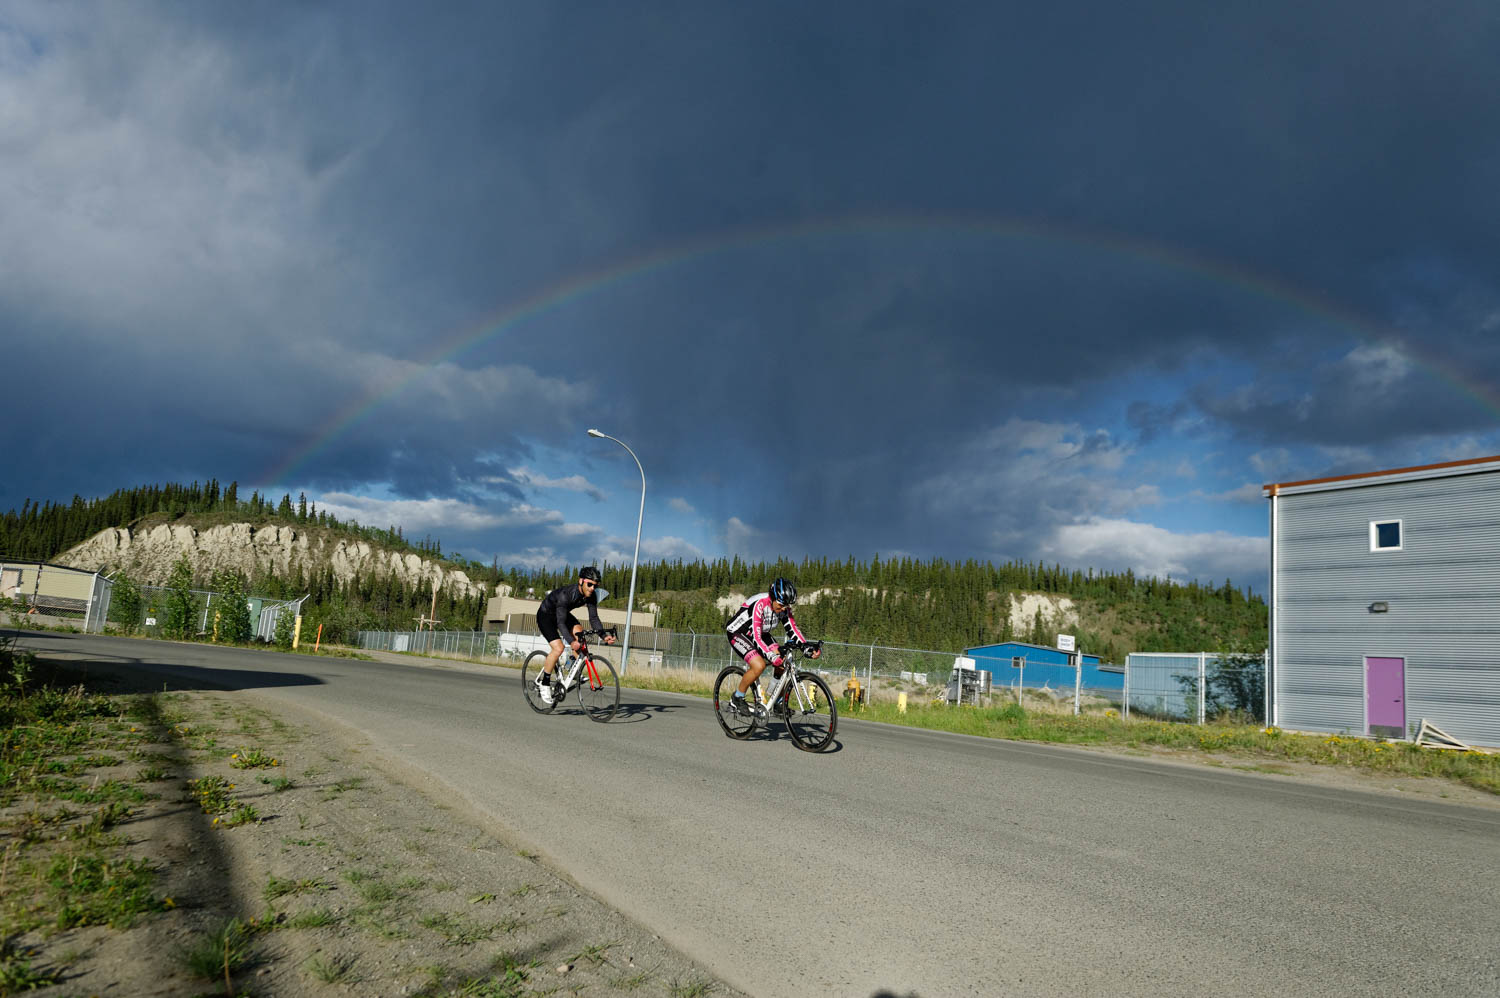 We had all sorts of weather during the Crit and that made for some pretty cool lighting and even a rainbow!